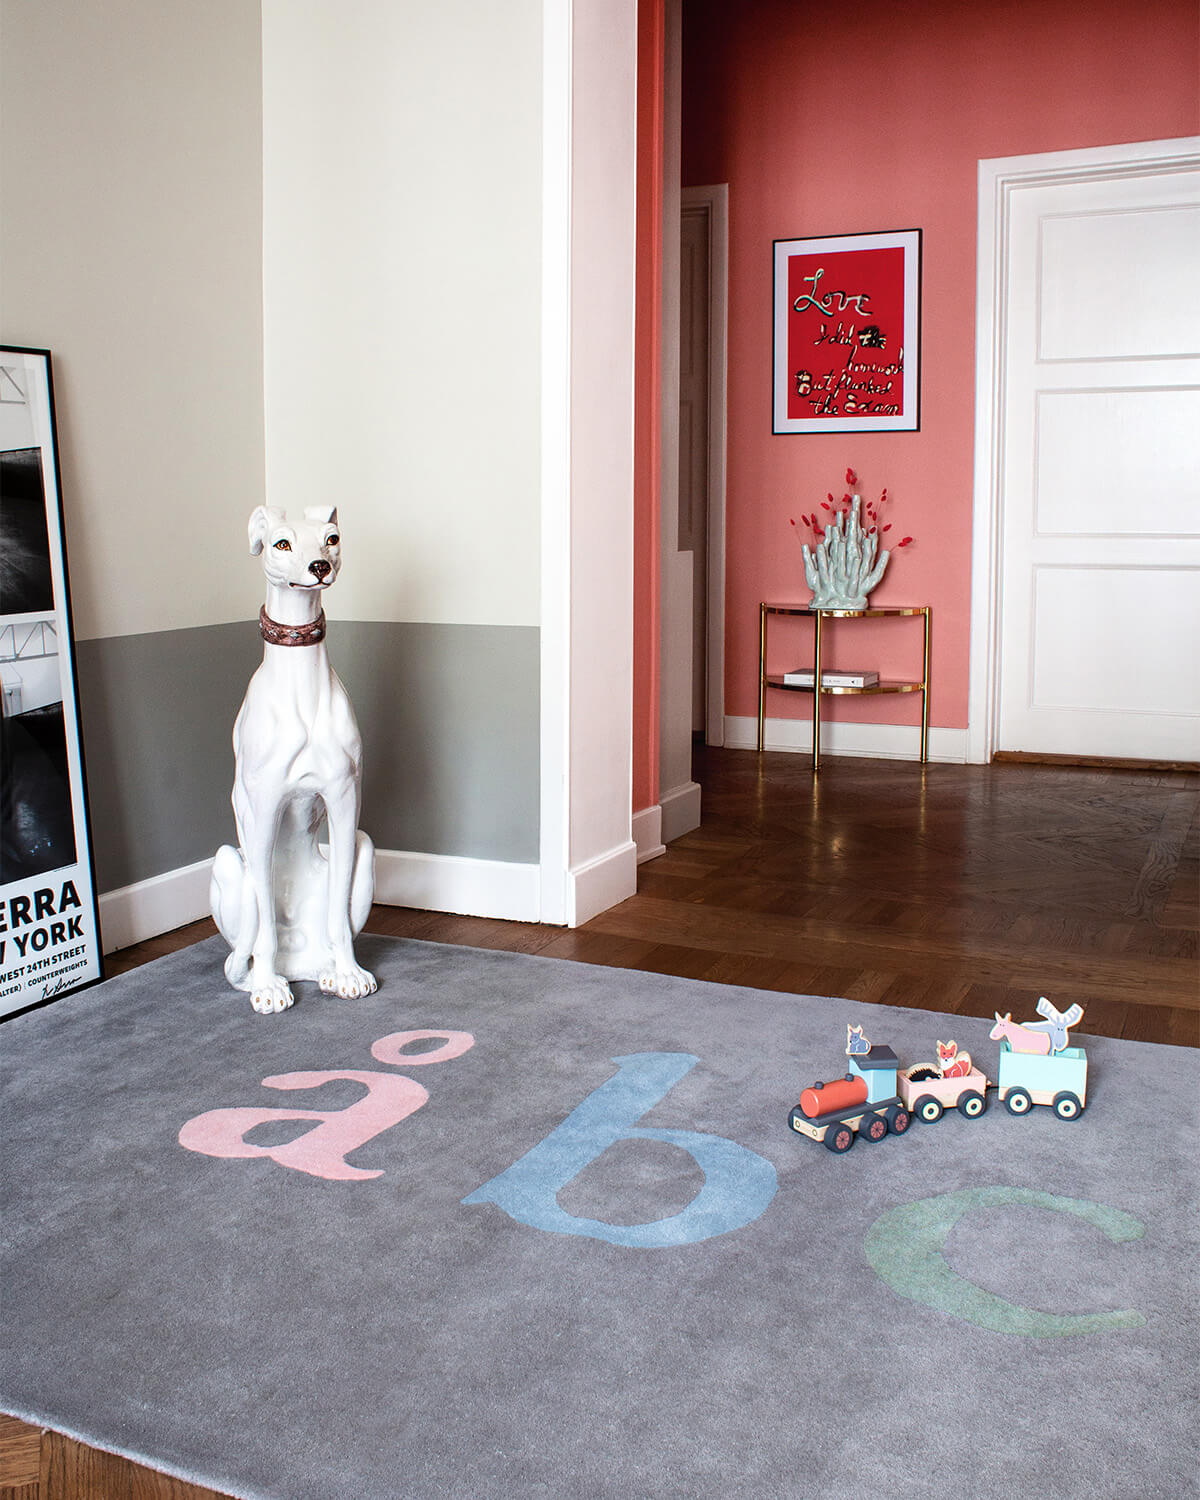 The plush rug ÅBC in color gray displayed in a colorful and fun apartment.